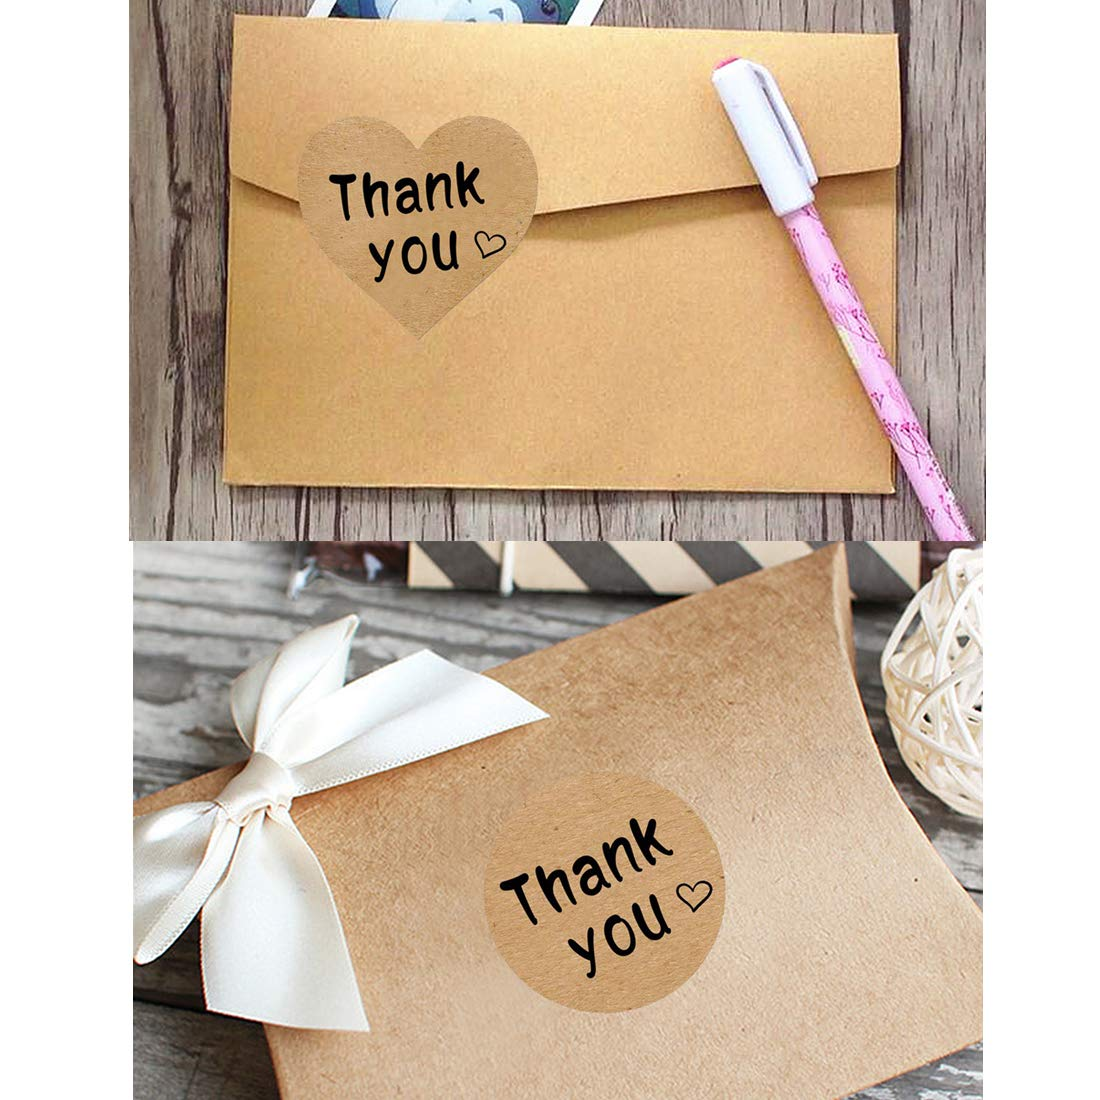 Thank You Stickers Roll 1000pcs Adhesive Labels Kraft Paper with Black Hearts, Decorative Sealing Stickers for Christmas Gifts, Wedding, Party by Vinkki (Image #5)